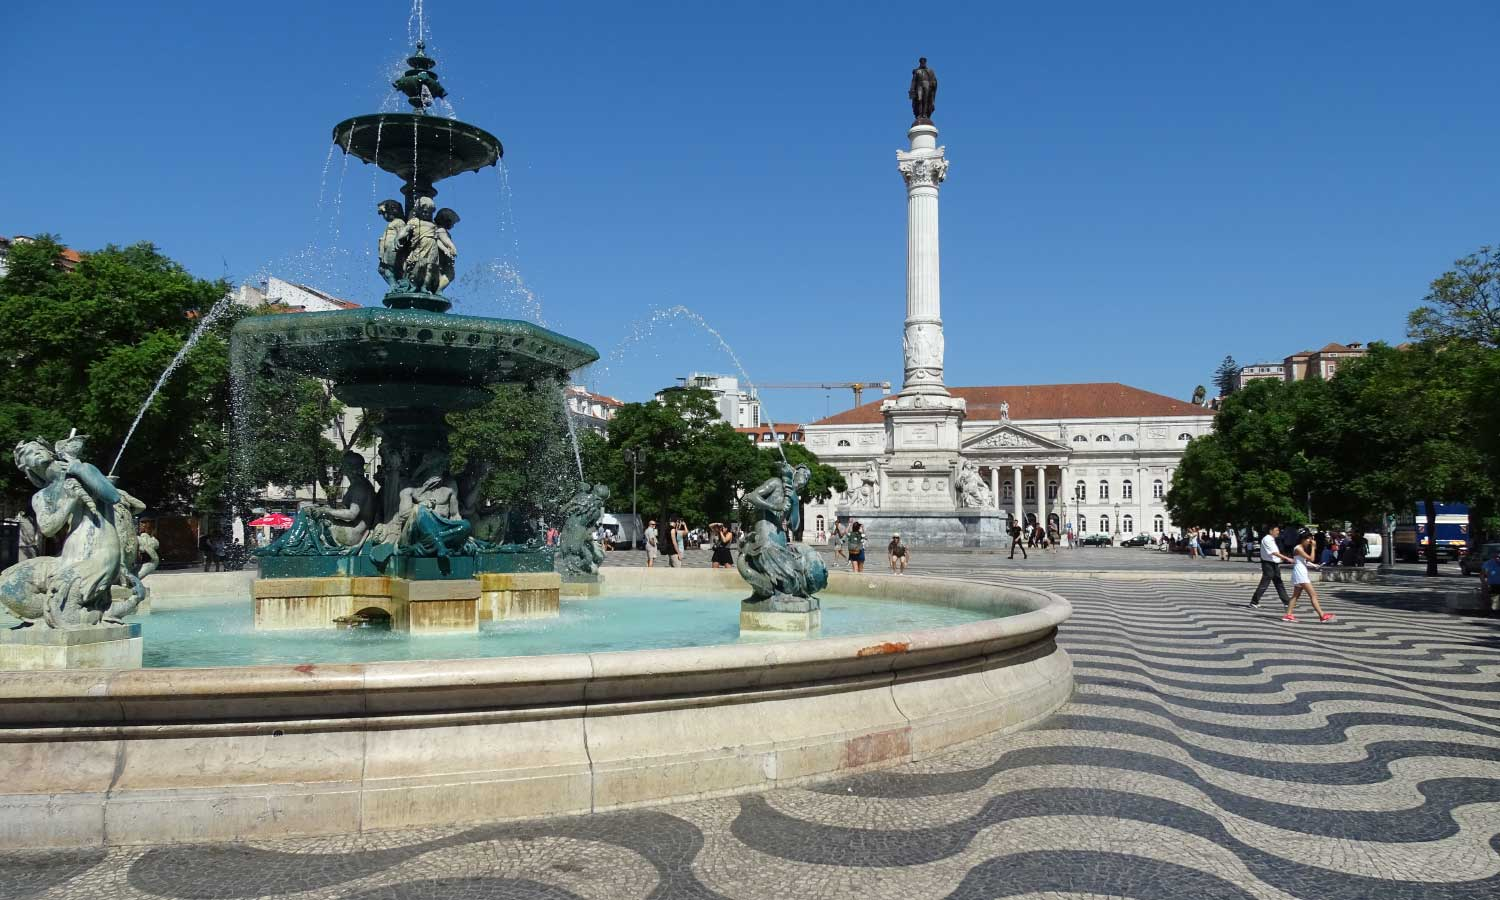 Money saving tips for Lisbon - Shows an iconic monument and square